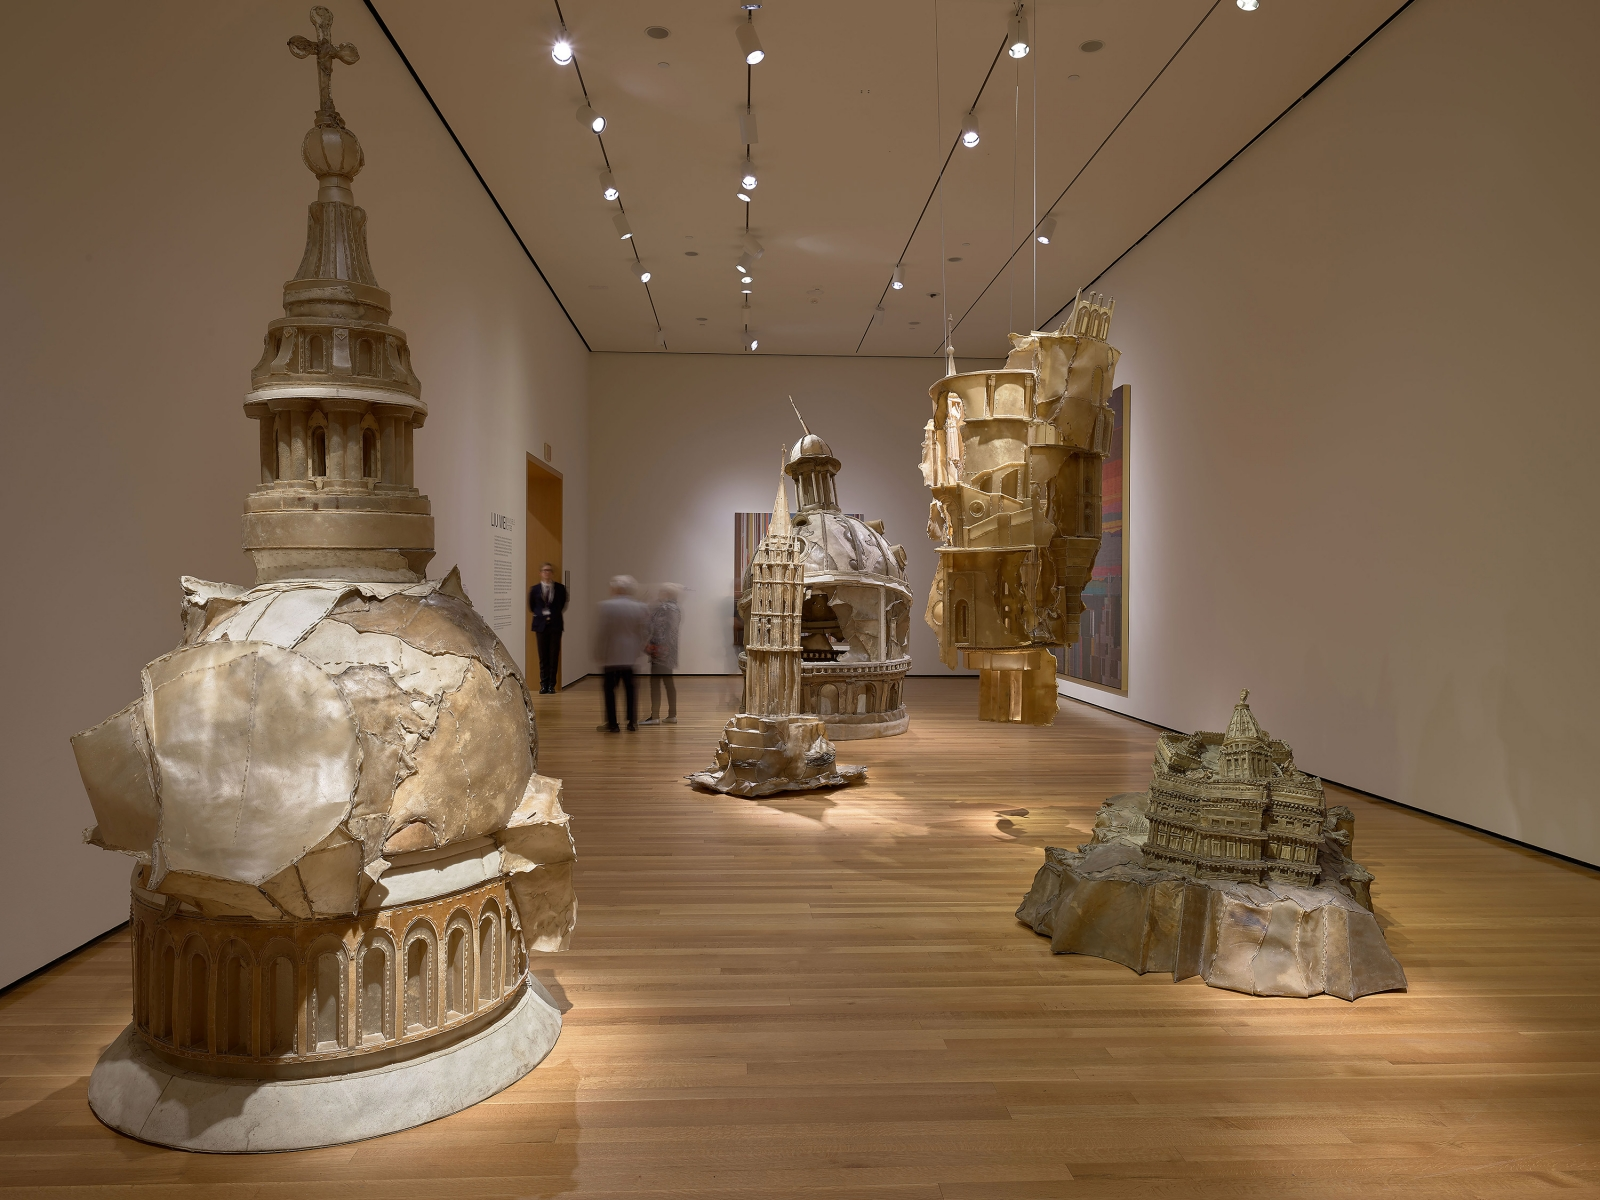 View 3 of Liu Wei's solo museum exhibition titled Invisible Cities at the Cleveland Museum of Art